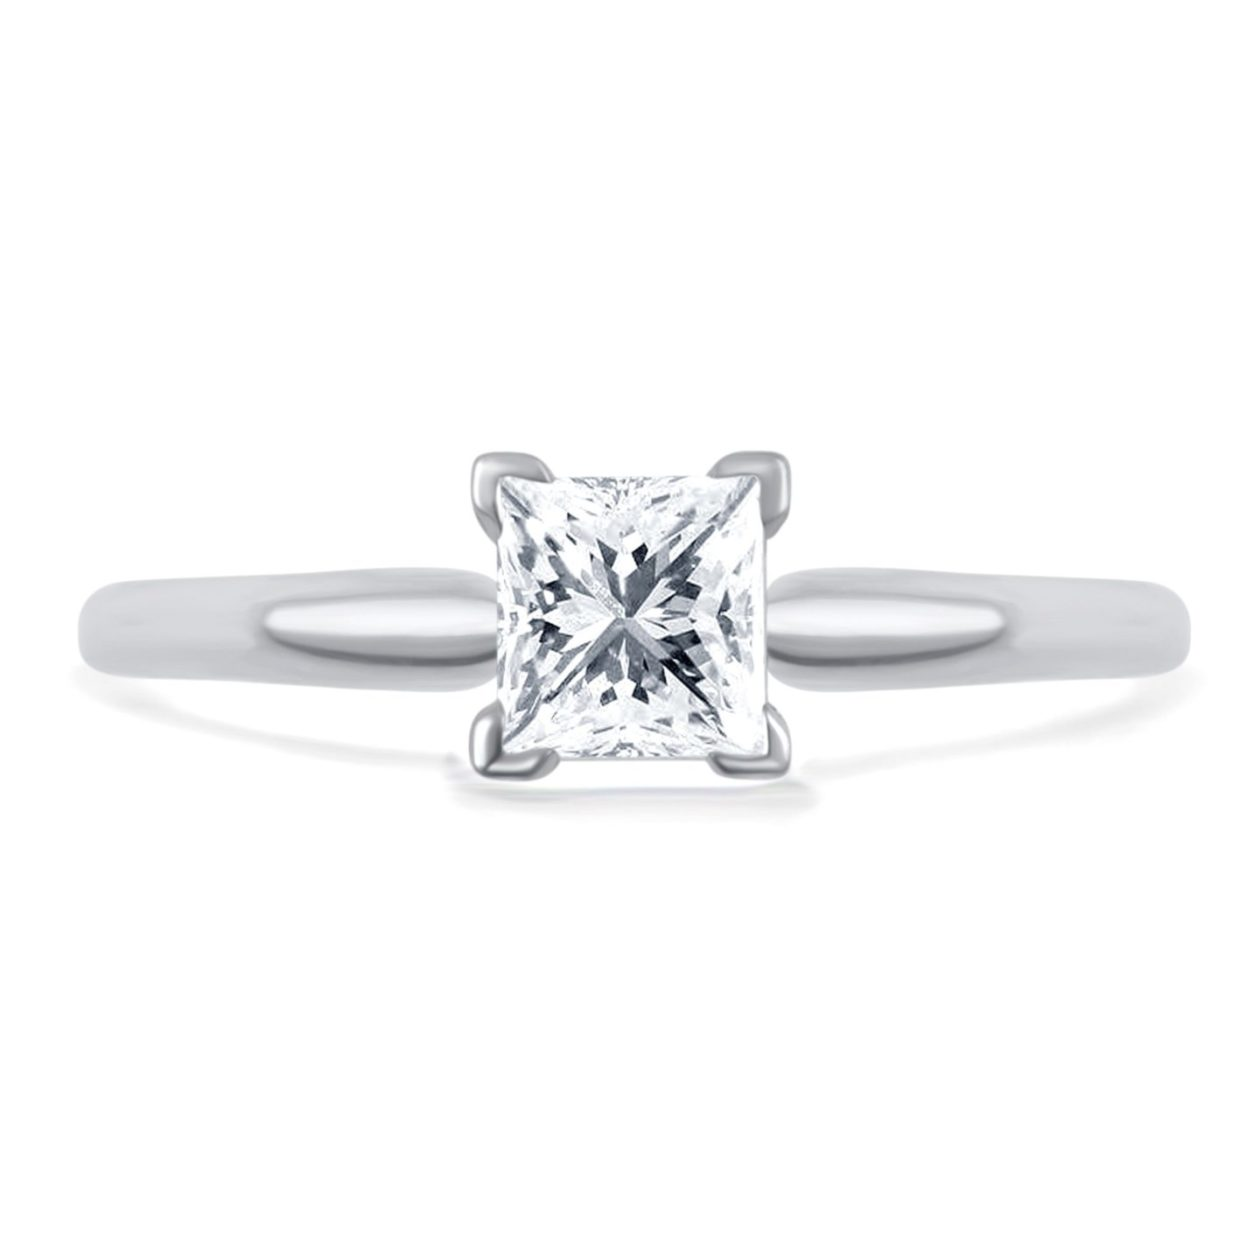 princess-cut diamond solitaire engagement ring on white background